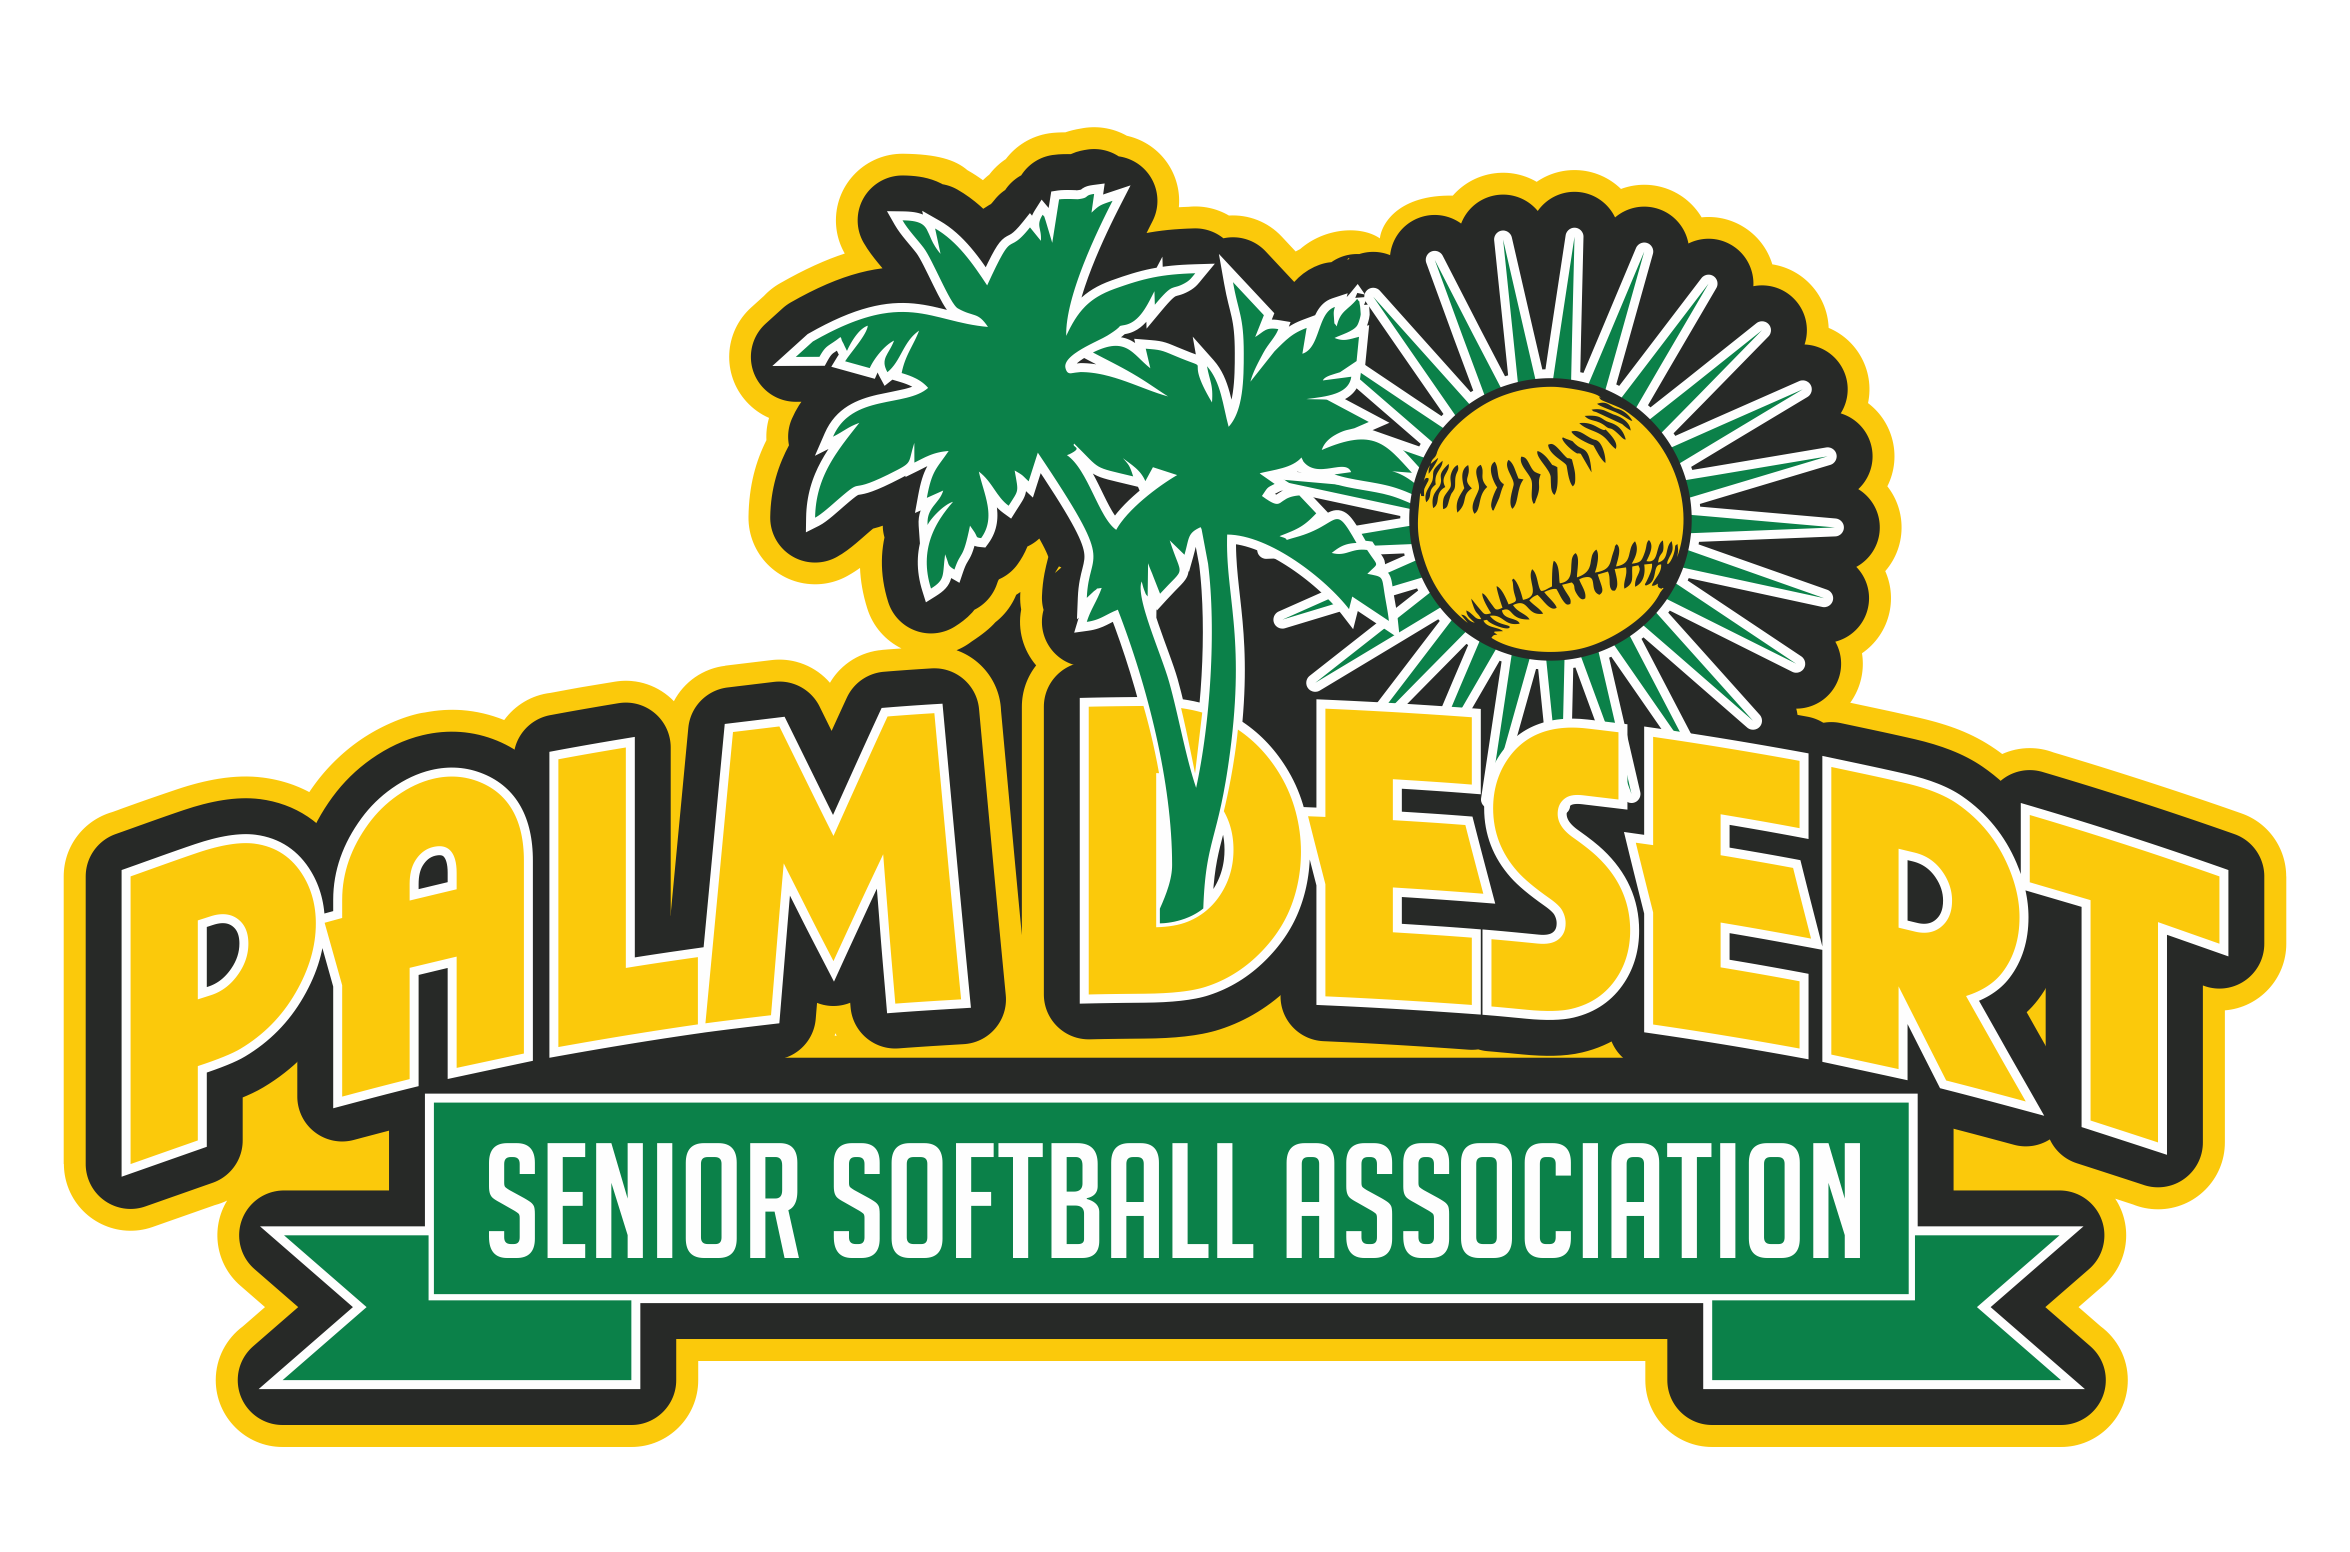 The Palm Desert Senior Softball Association